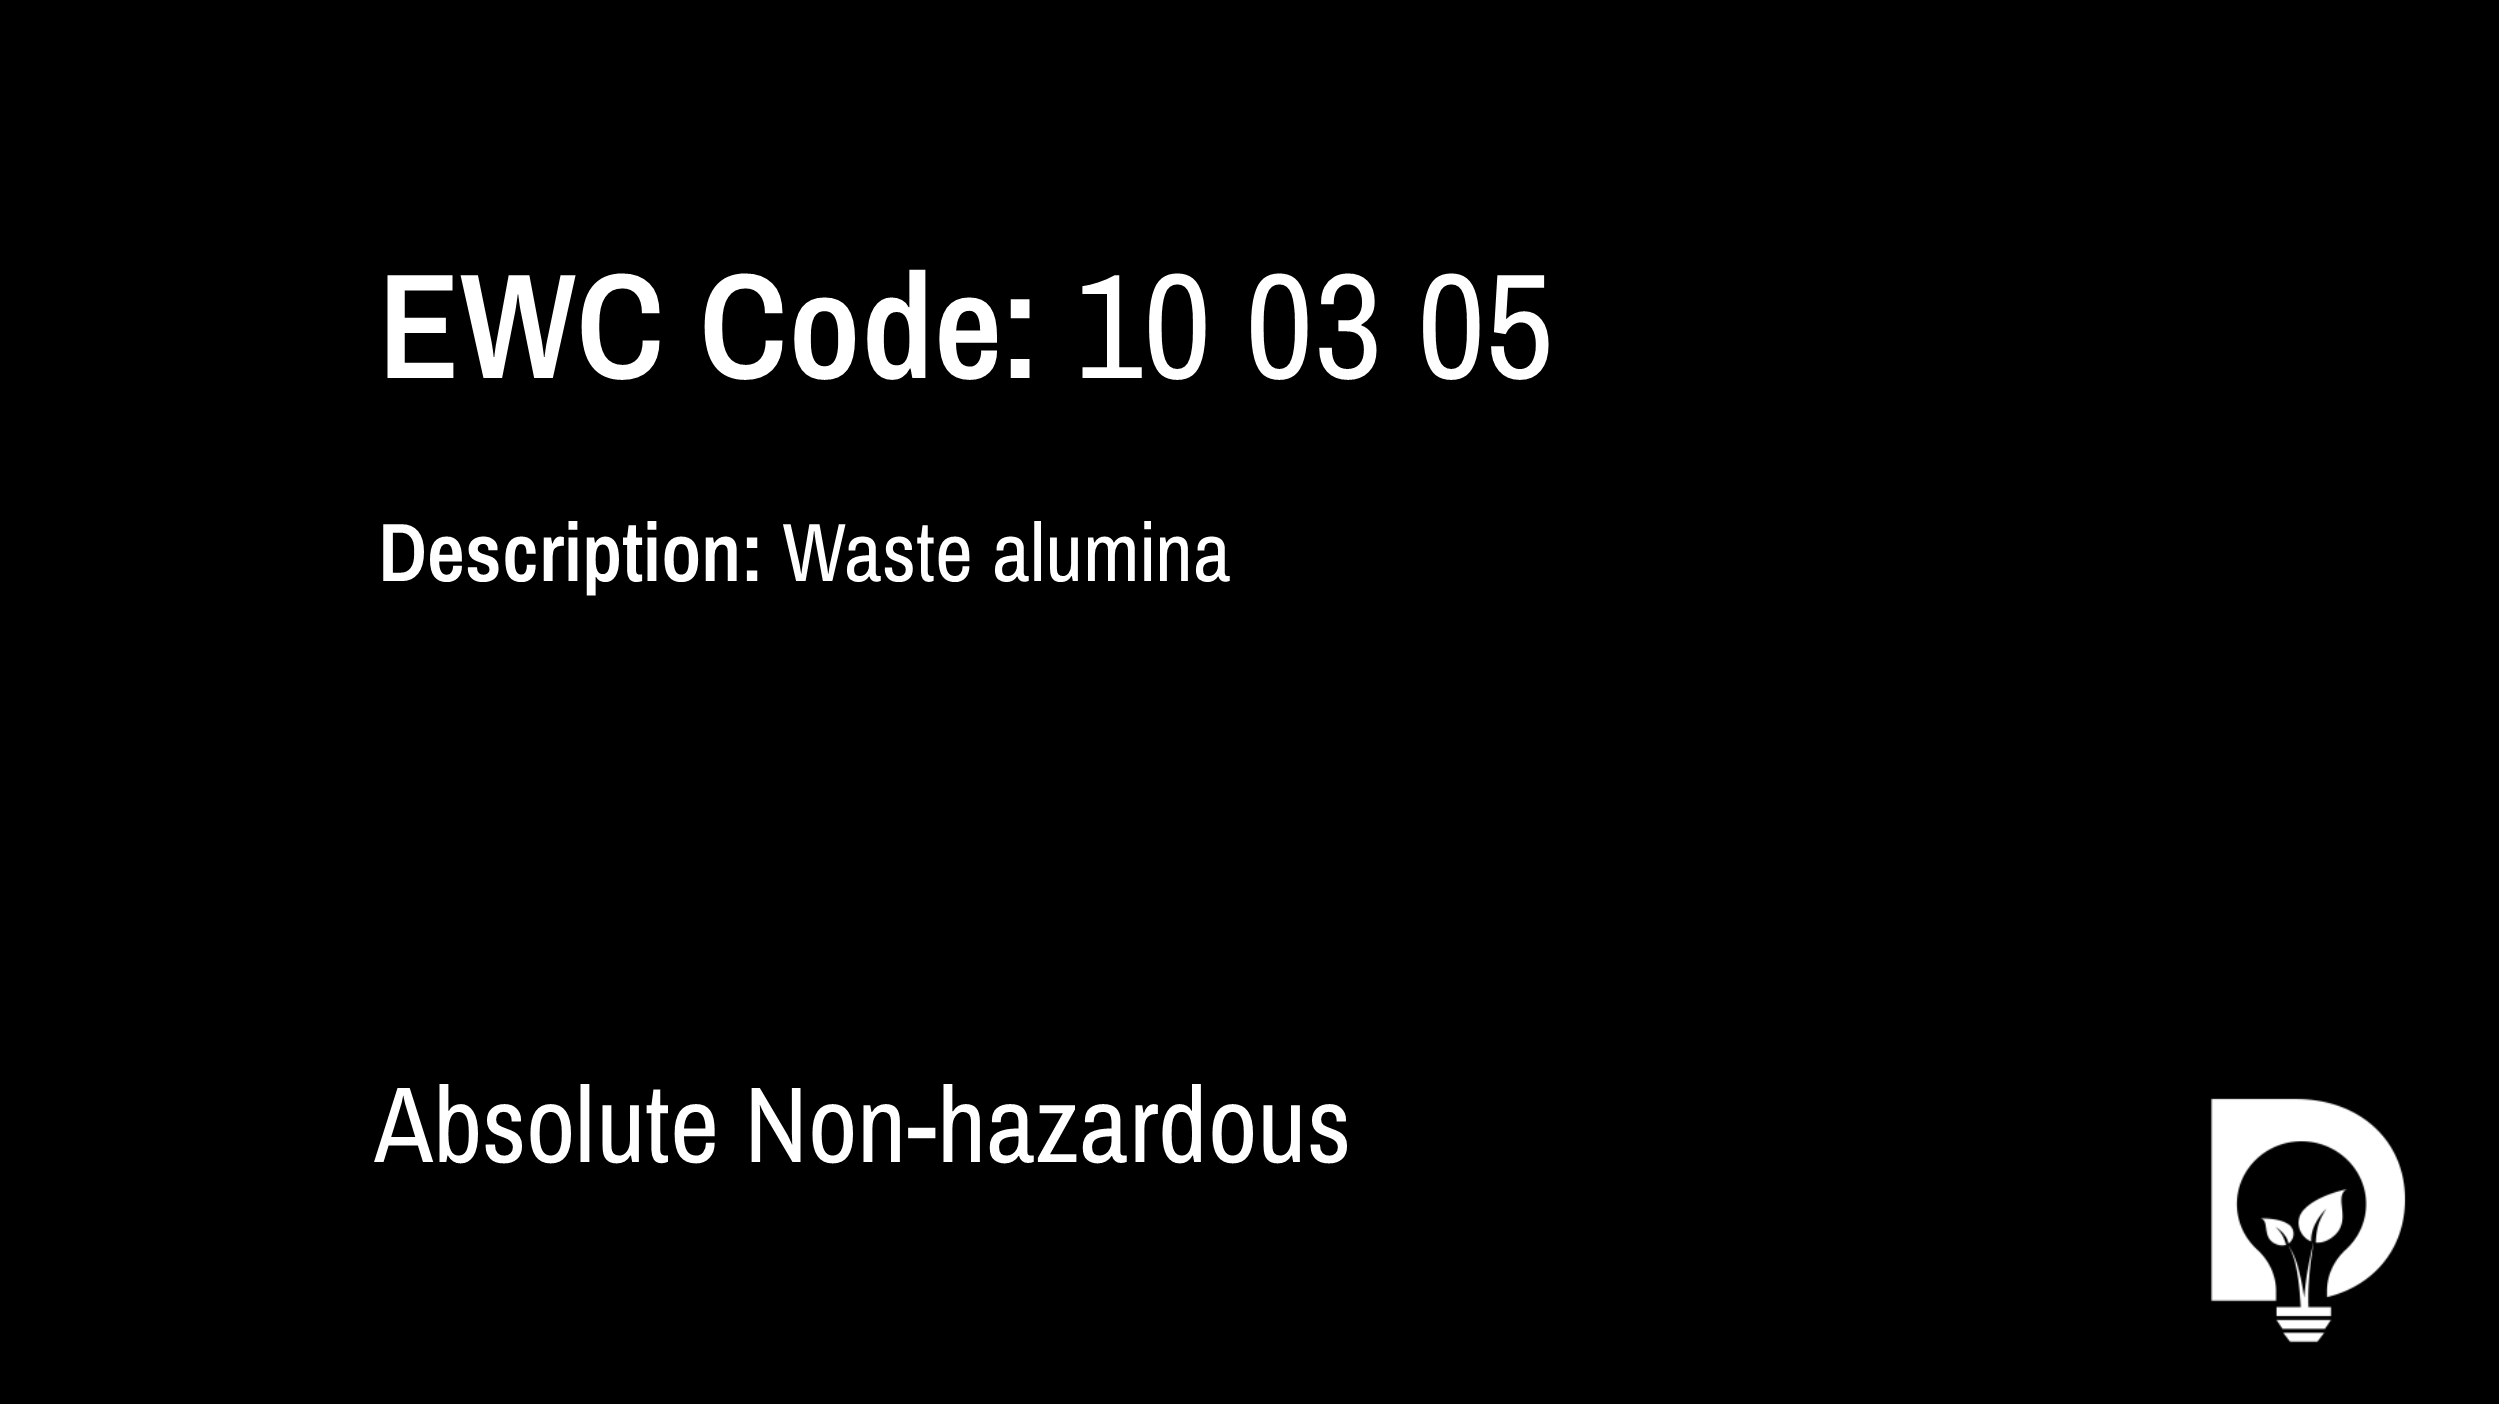 EWC Code: 10 03 05 - waste alumina. Type: Absolute Non-hazardous. Image by Dsposal